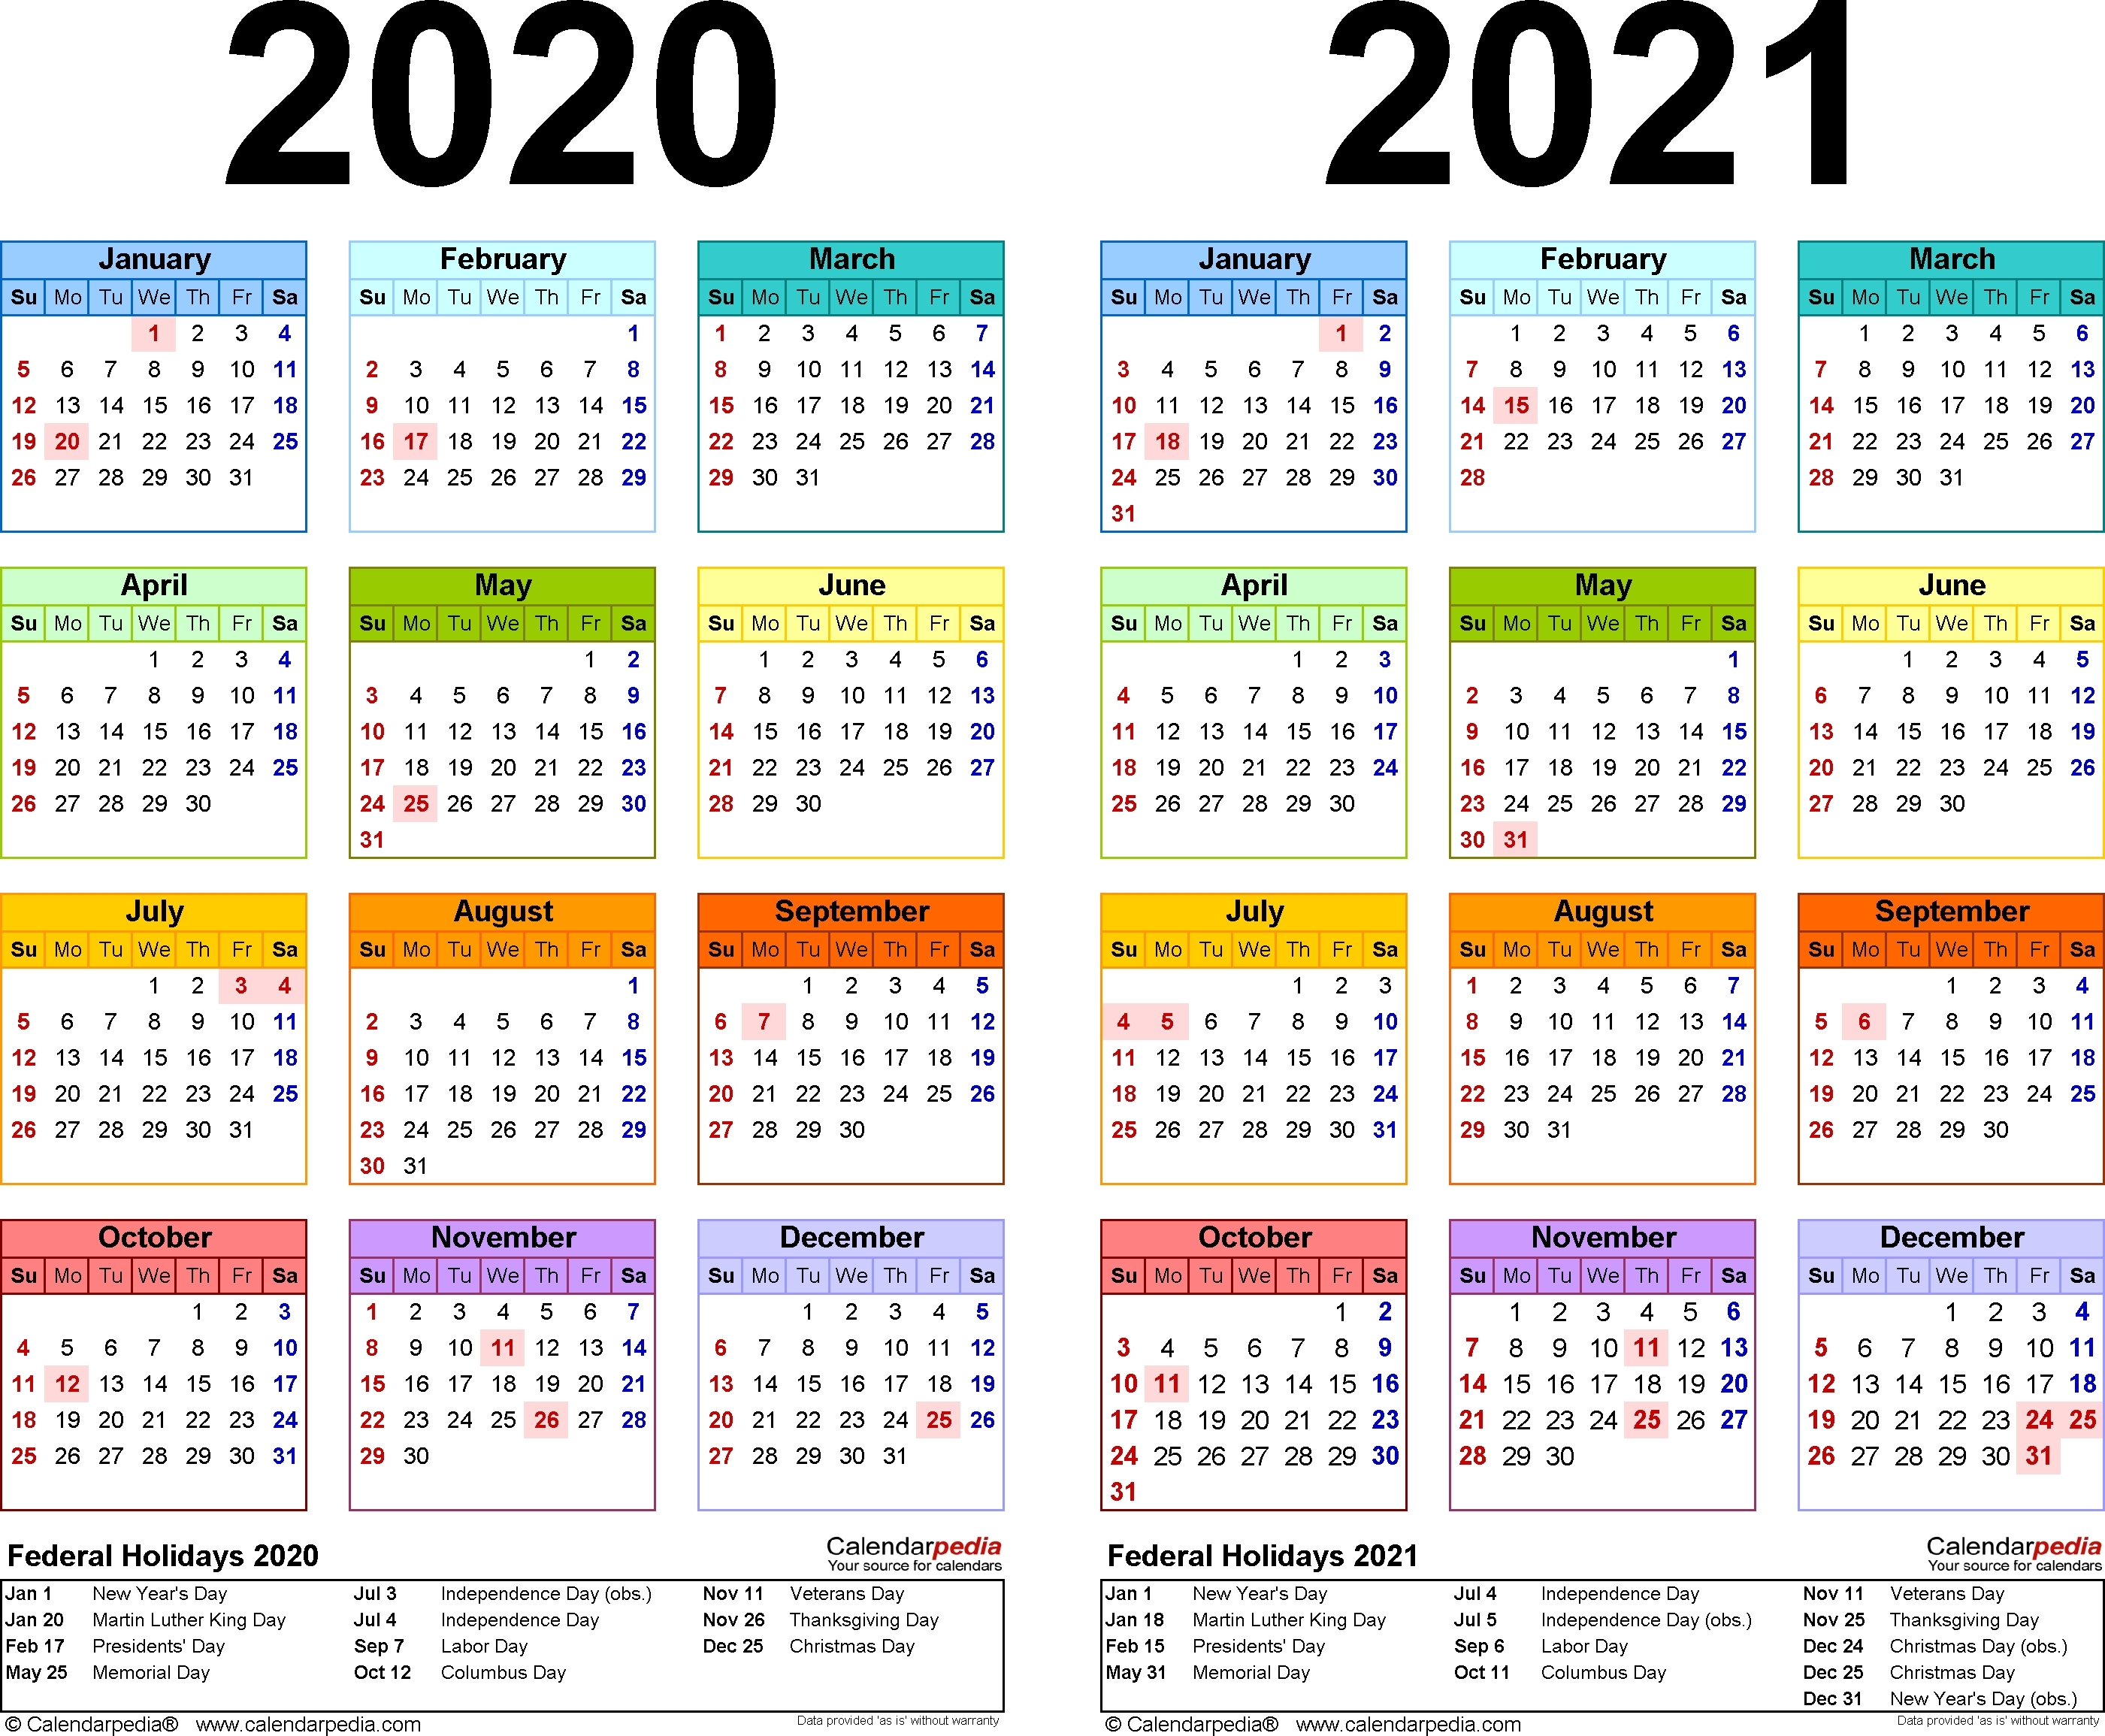 2020 Calendar Template Calendarlabs | Calendar Template